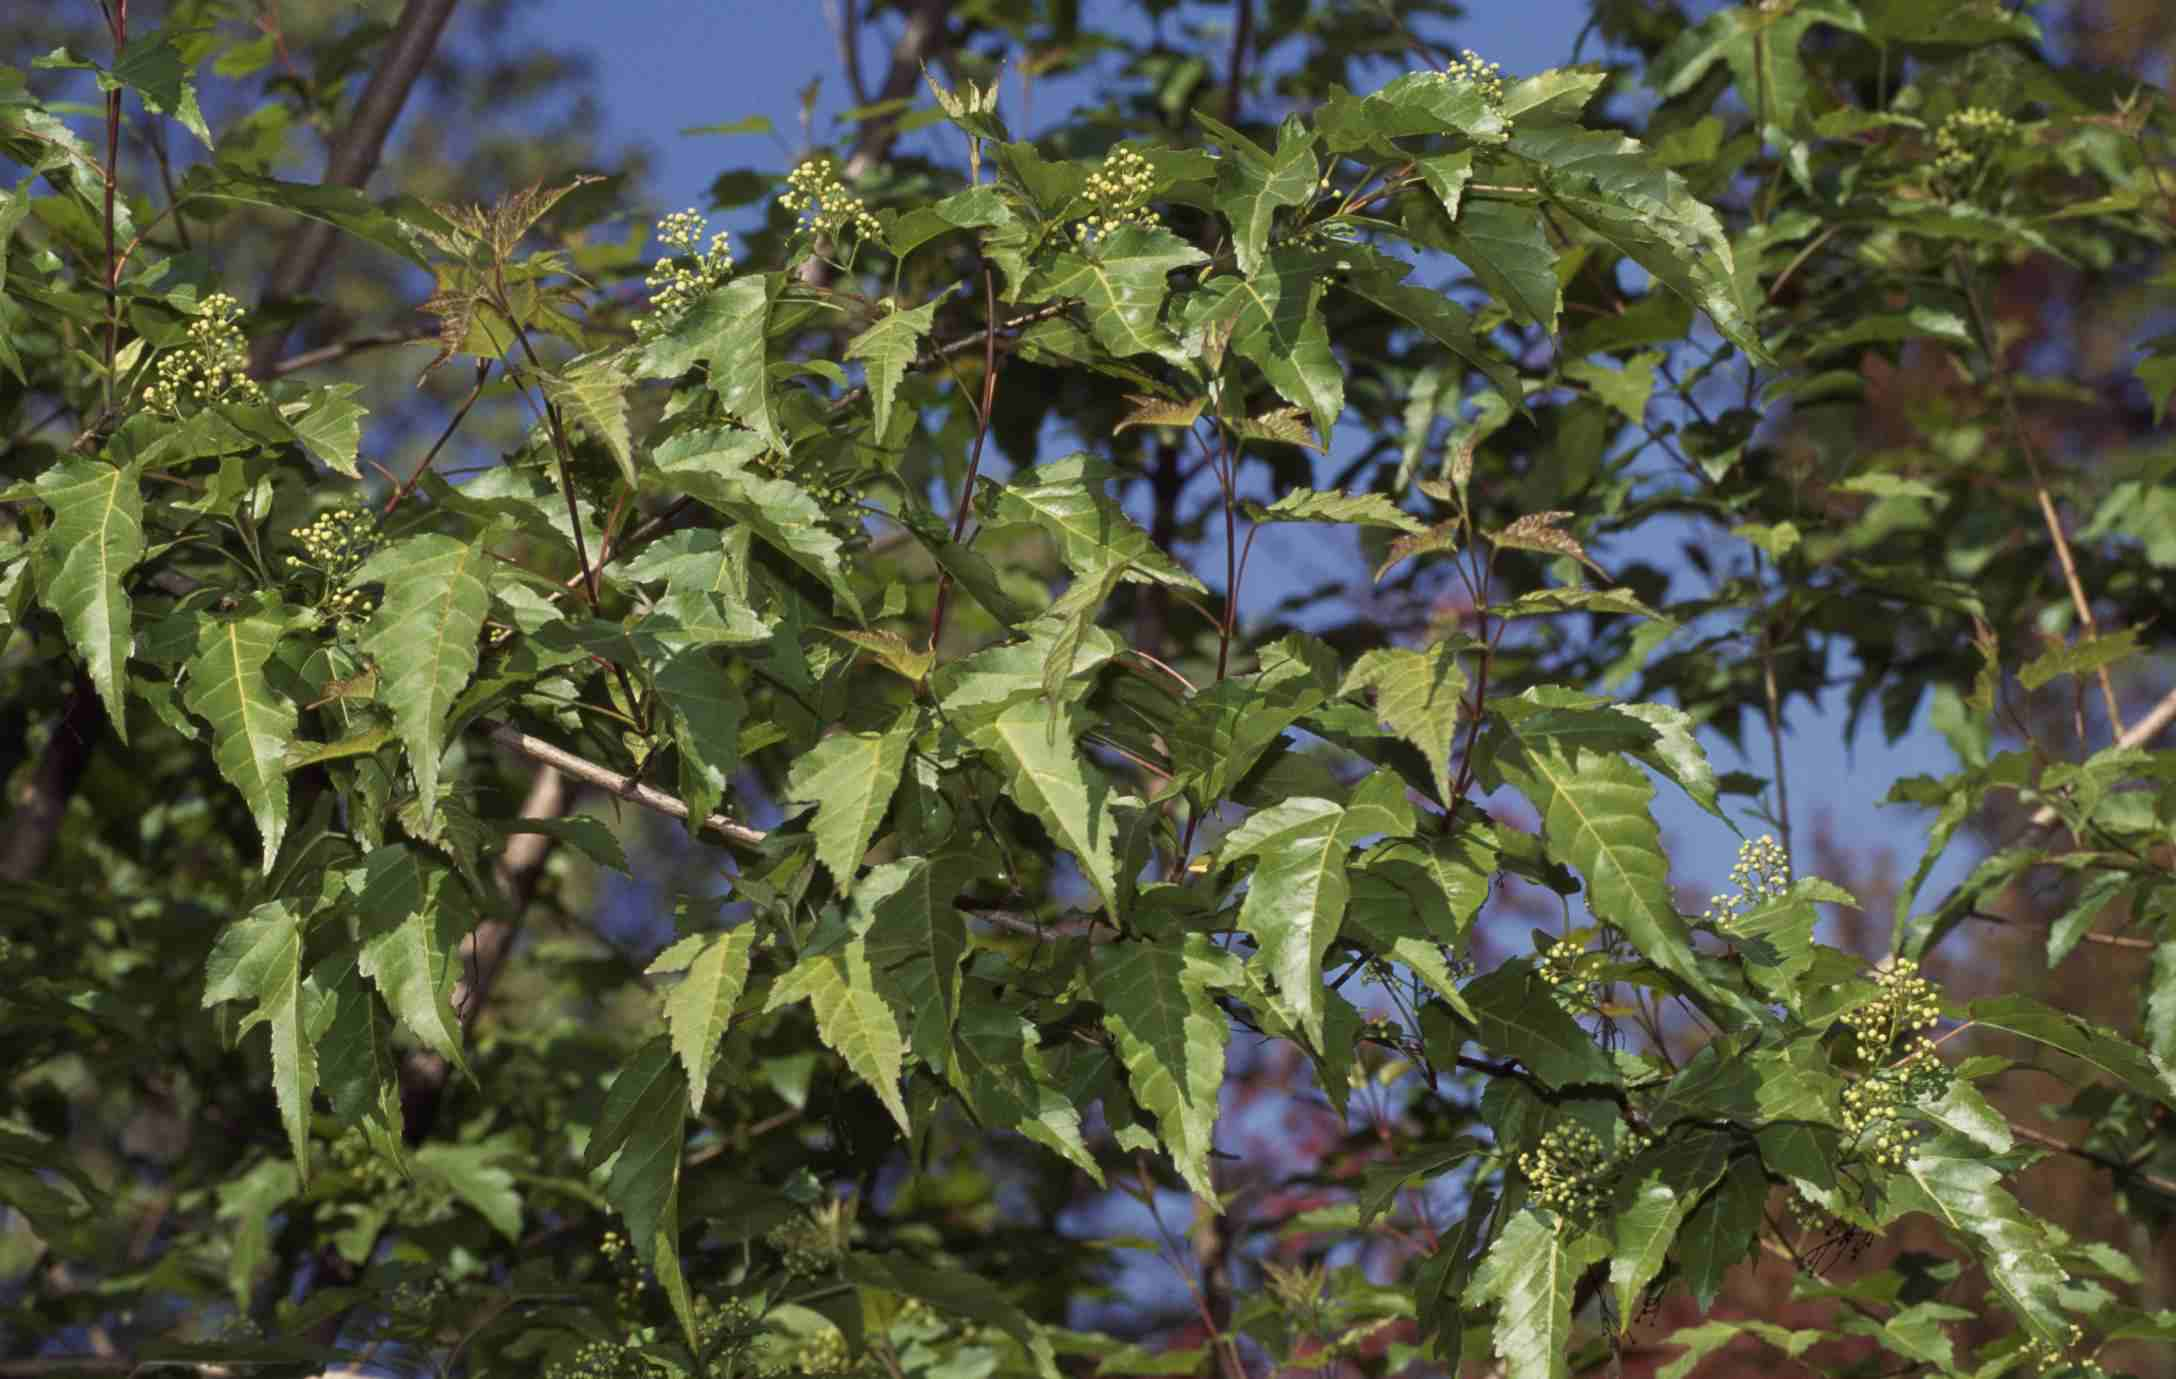 Amur Maple leaves (Acer ginnala), Aceraceae-Sapindaceae